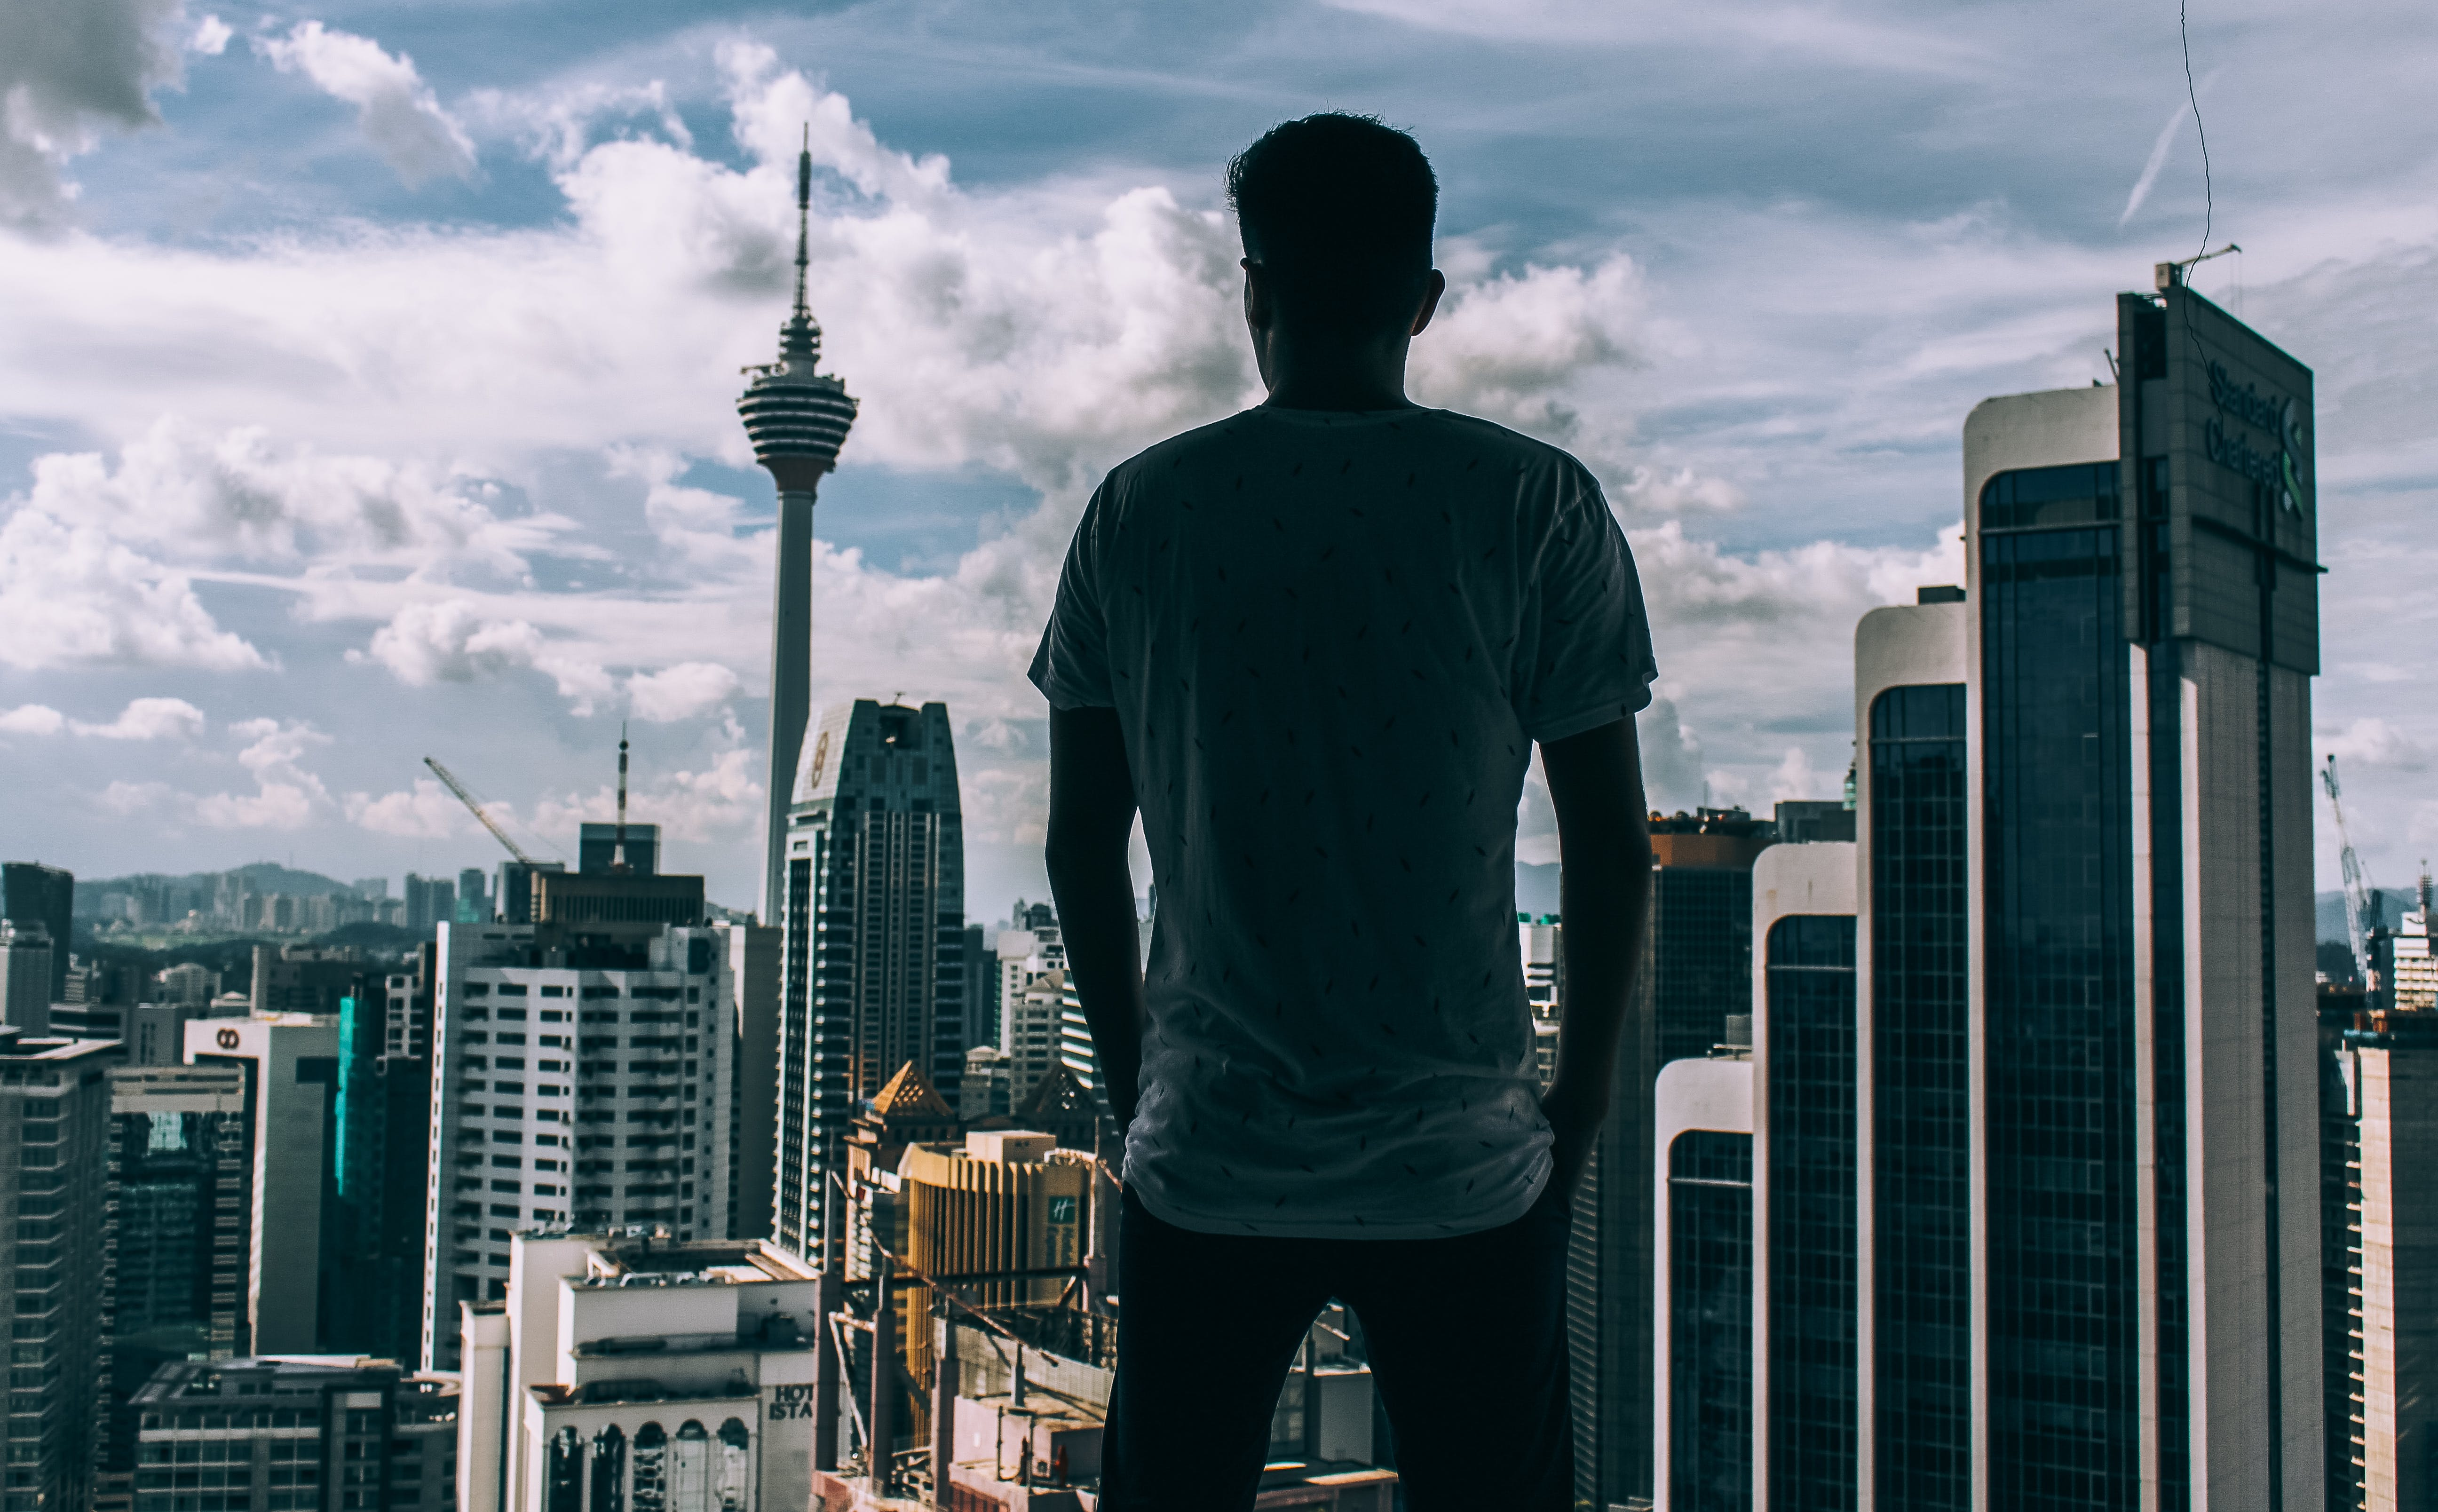 Man Standing While Facing Concrete Buildings